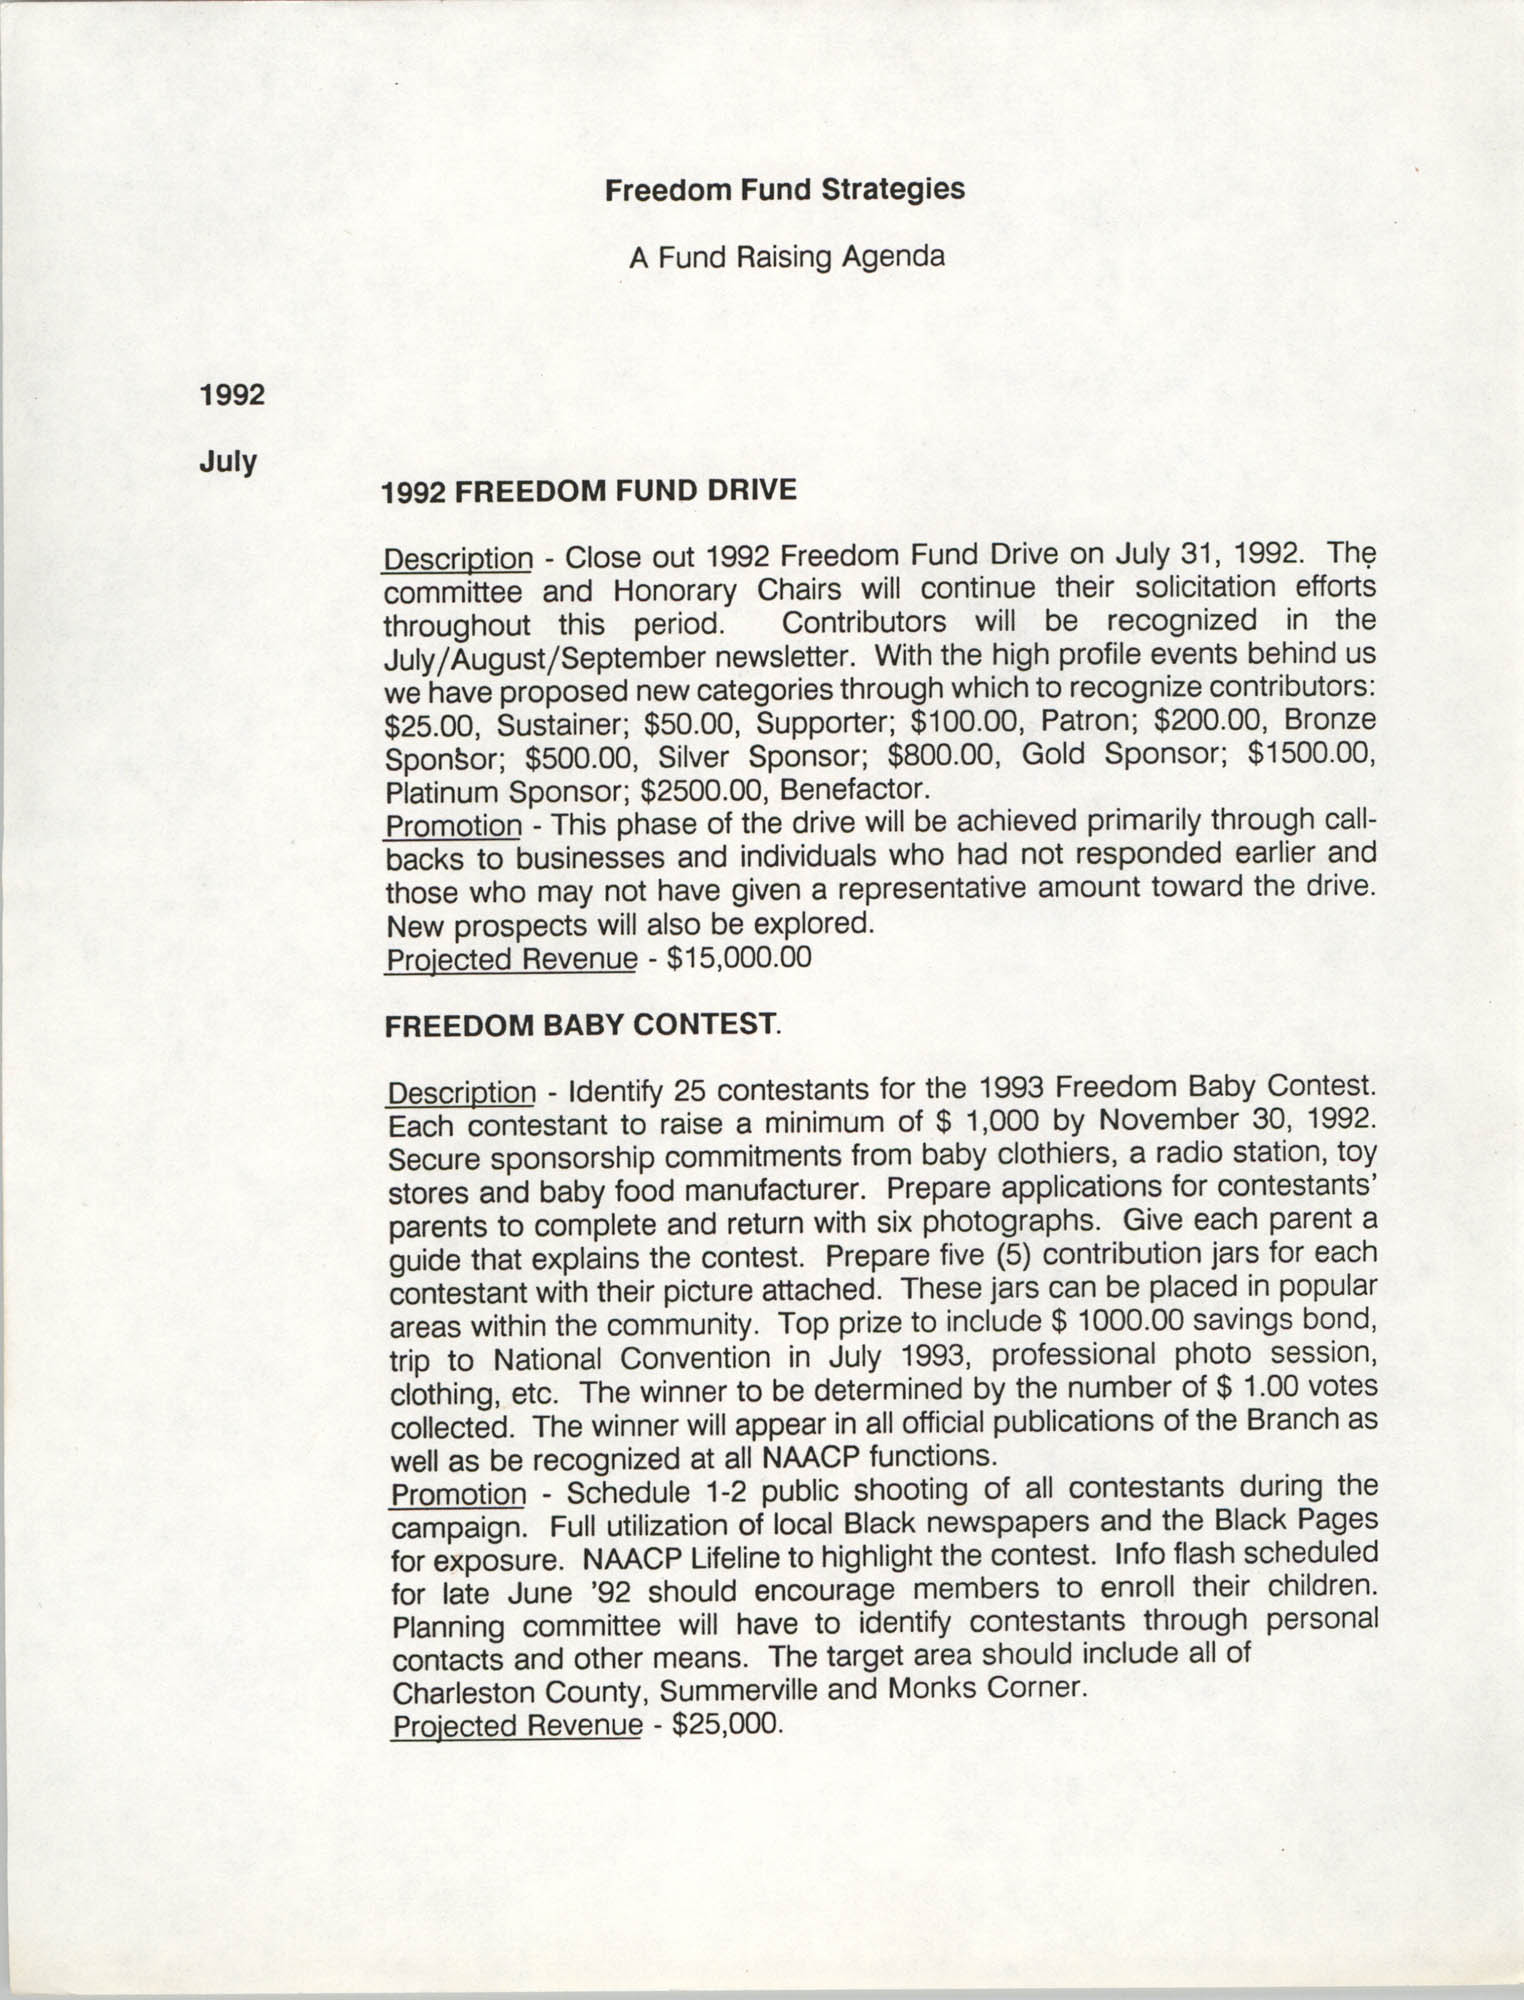 Fund Raising Agenda, Freedom Fund Strategies, 1992